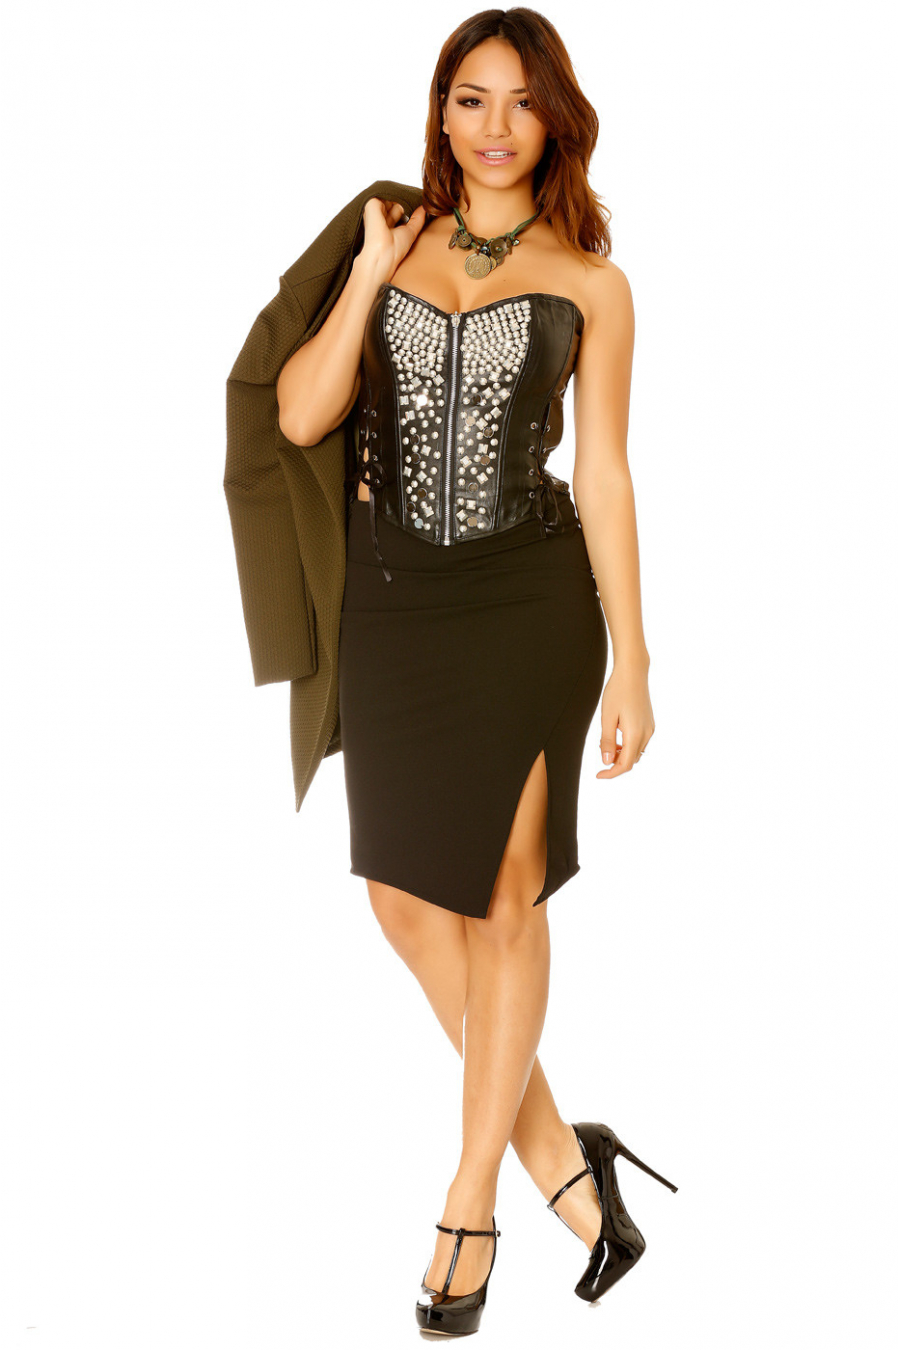 Black faux zipped bustier with rhinestones and lace. Fashion and sexy woman's bustier